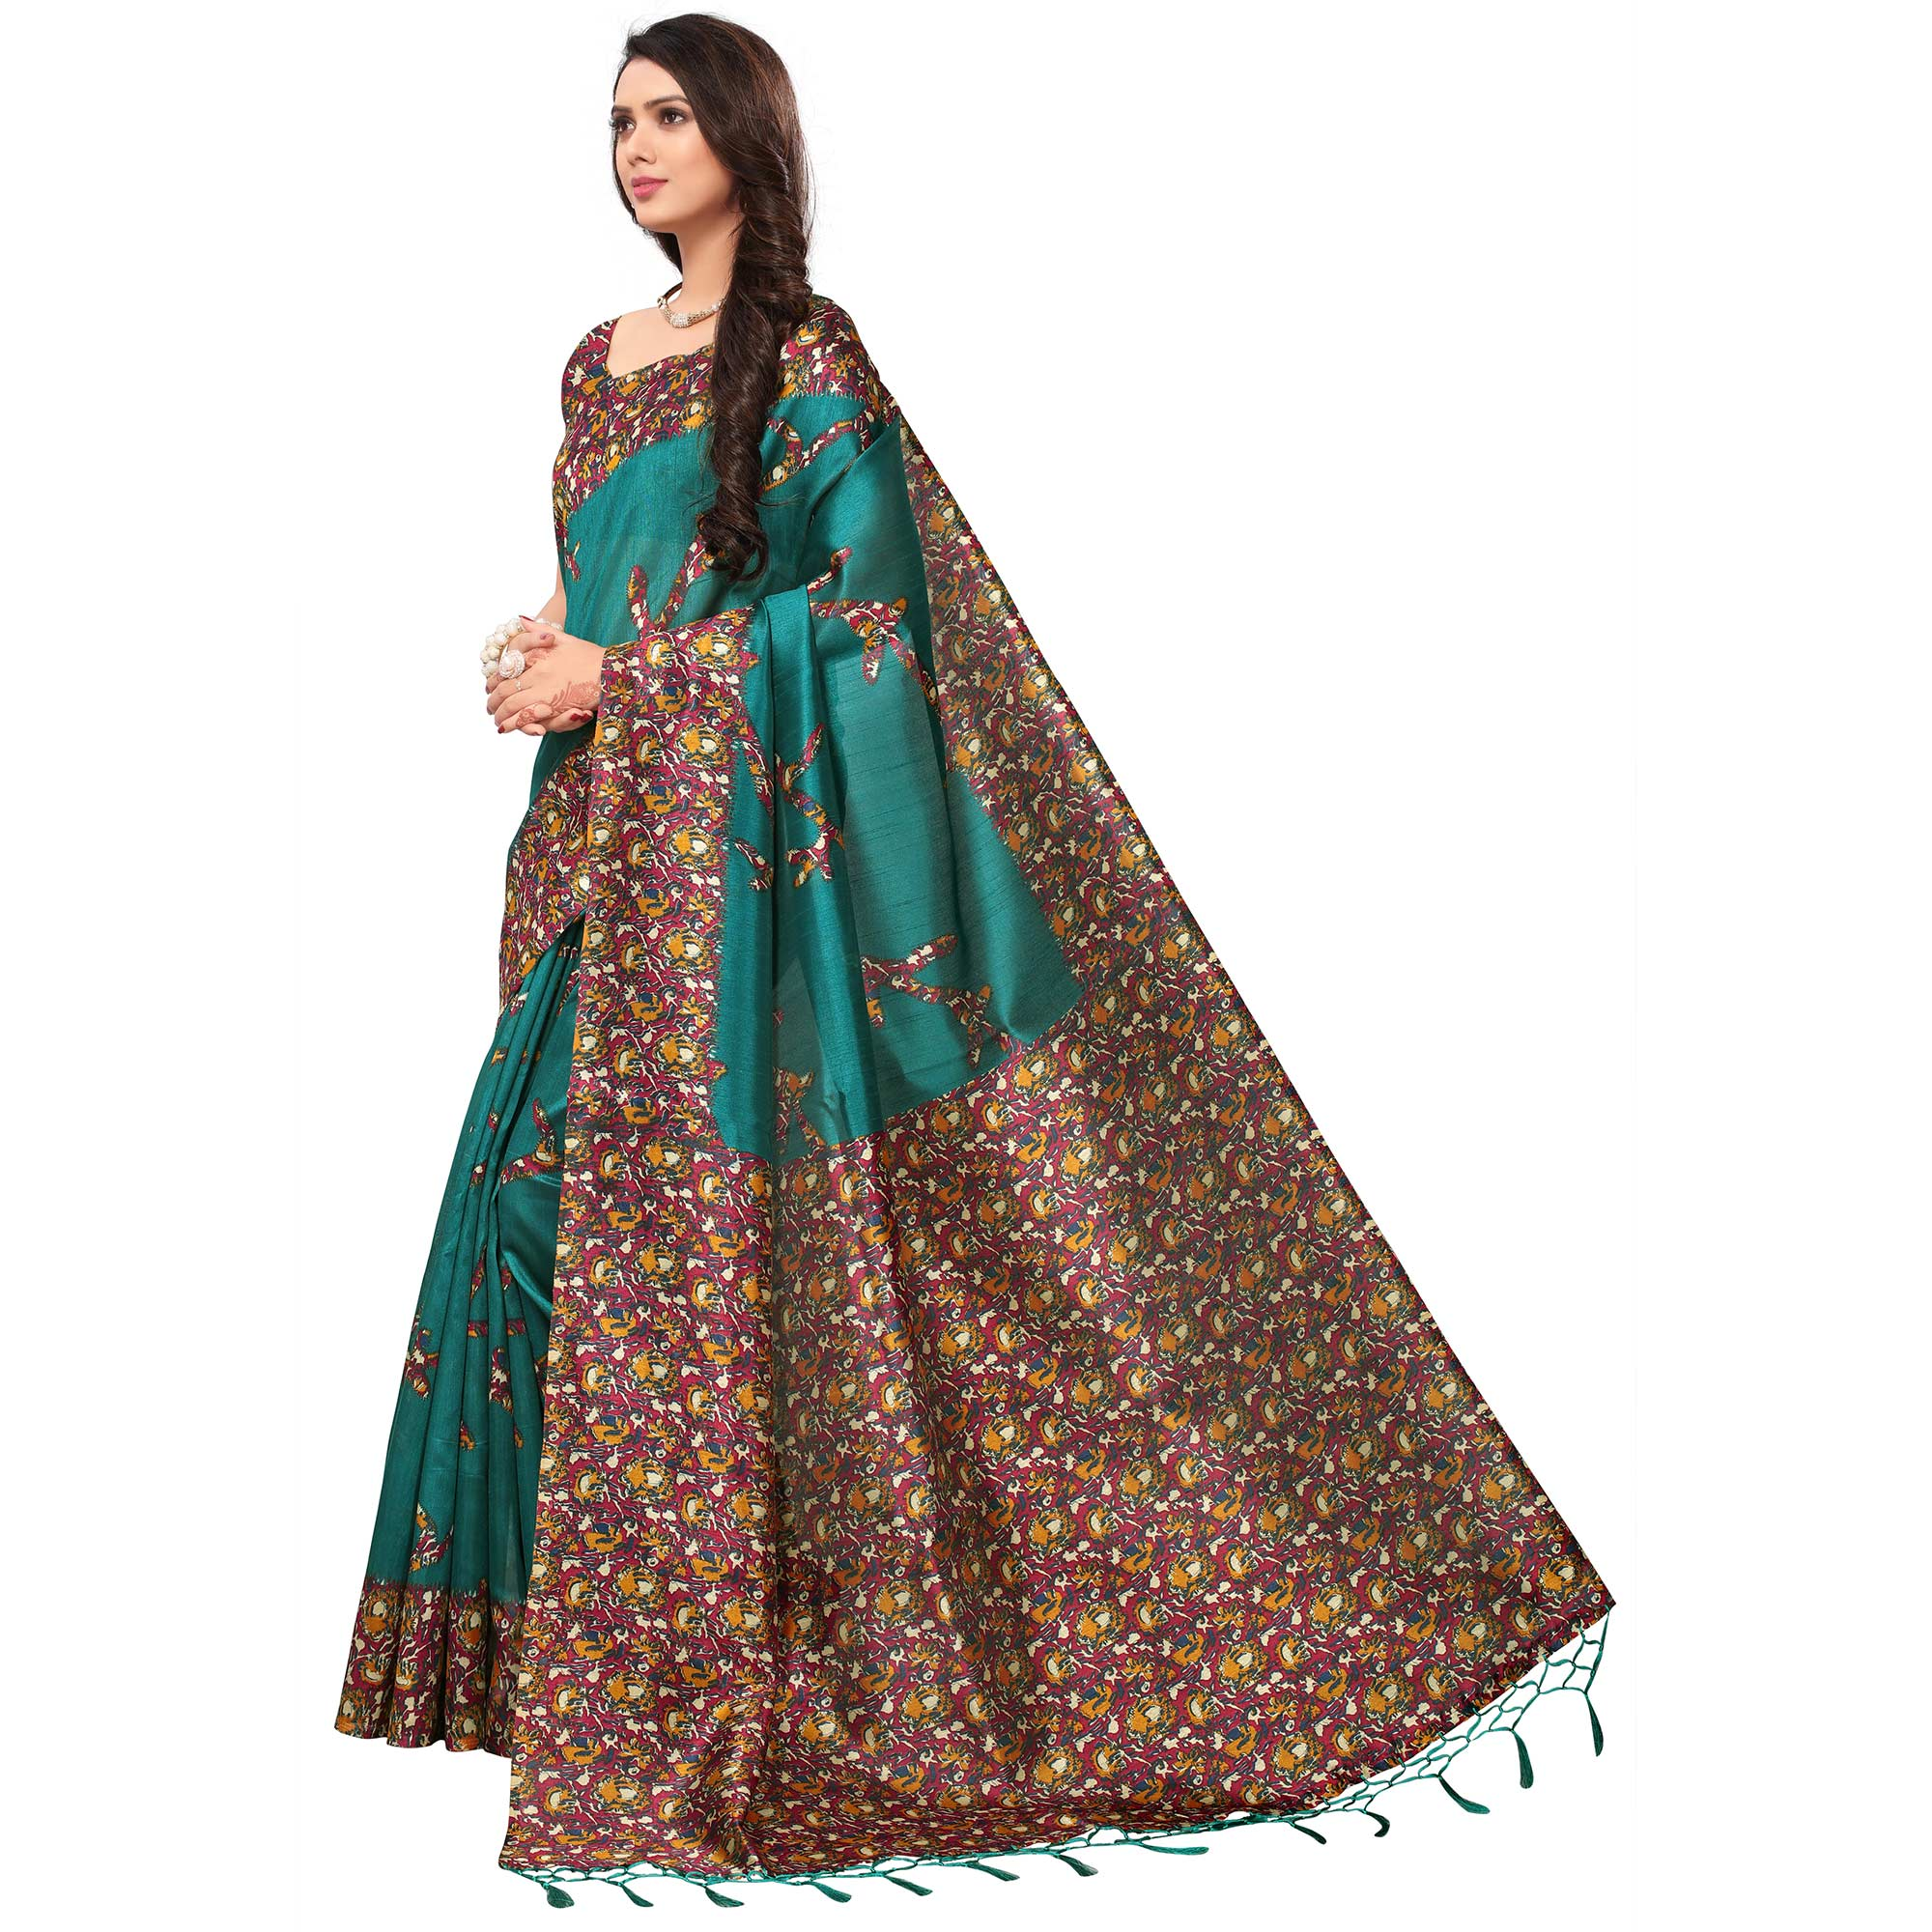 Classy Teal Green Colored Festive Wear Printed Silk Saree